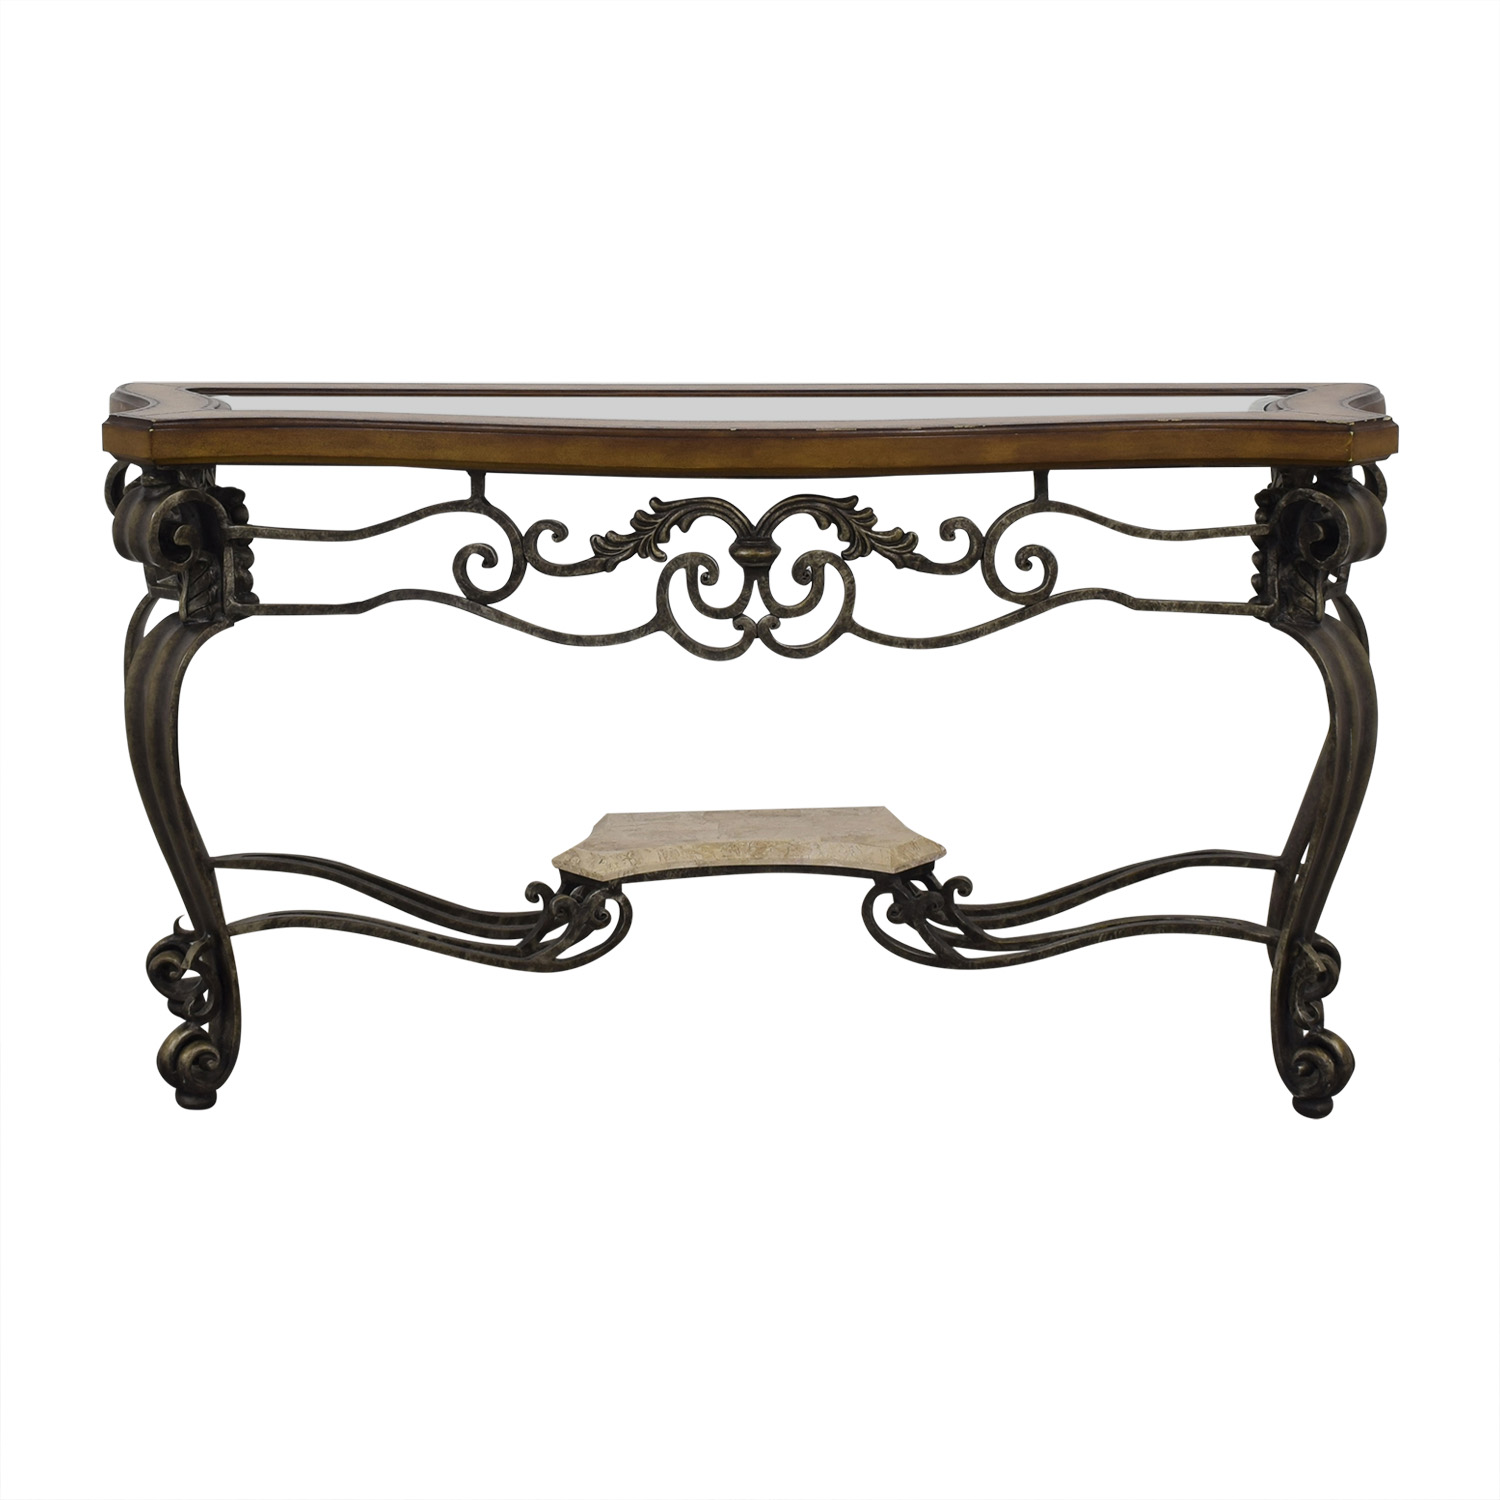 Thomasville Thomasville Credenza coupon